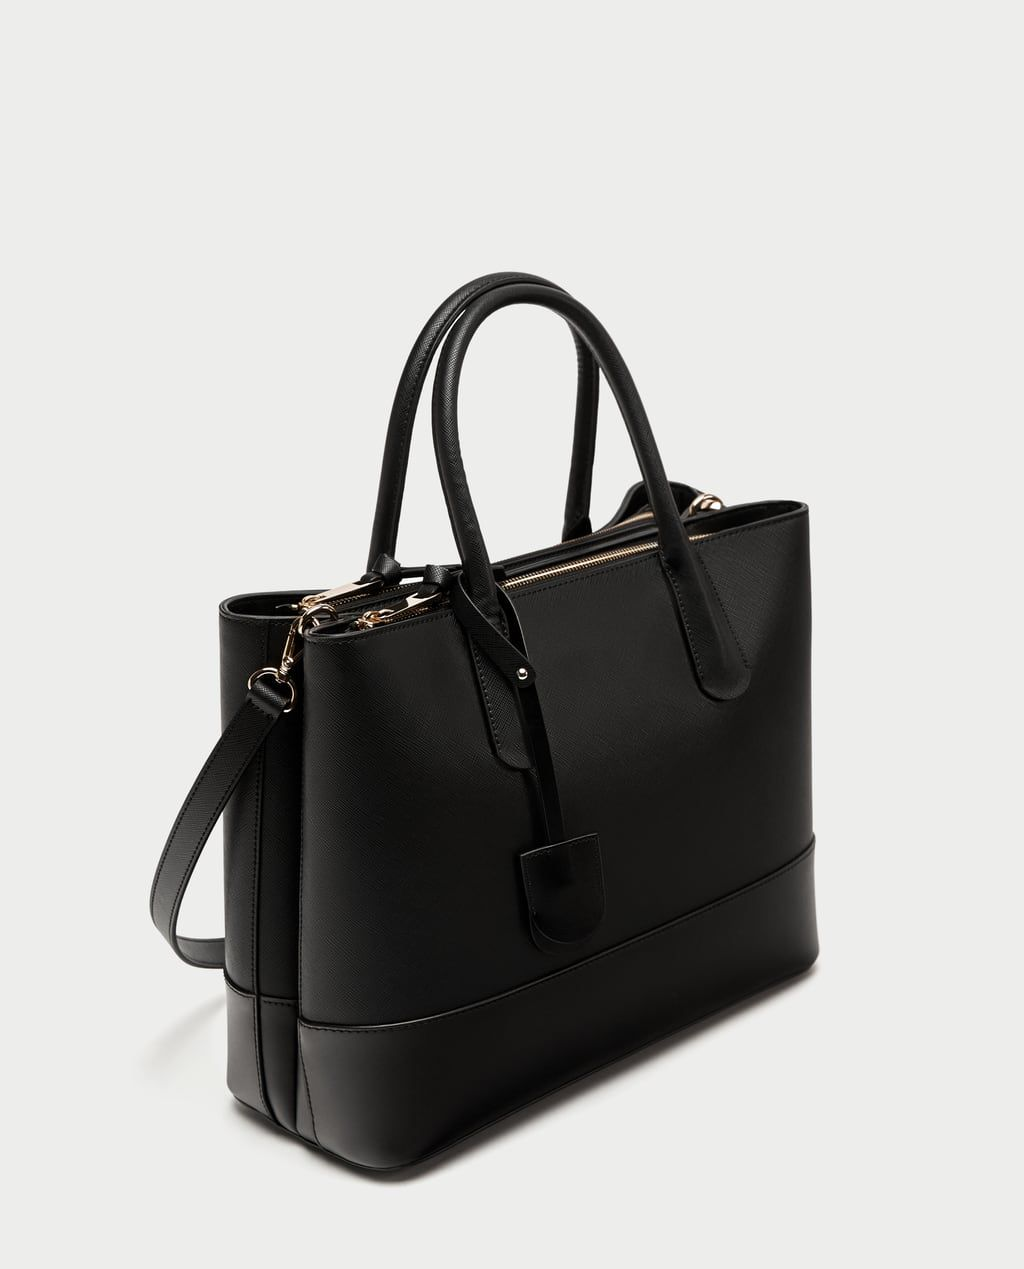 a9856783 CITY BAG WITH PENDANT-Essentials-BAGS-WOMAN | ZARA United States ...